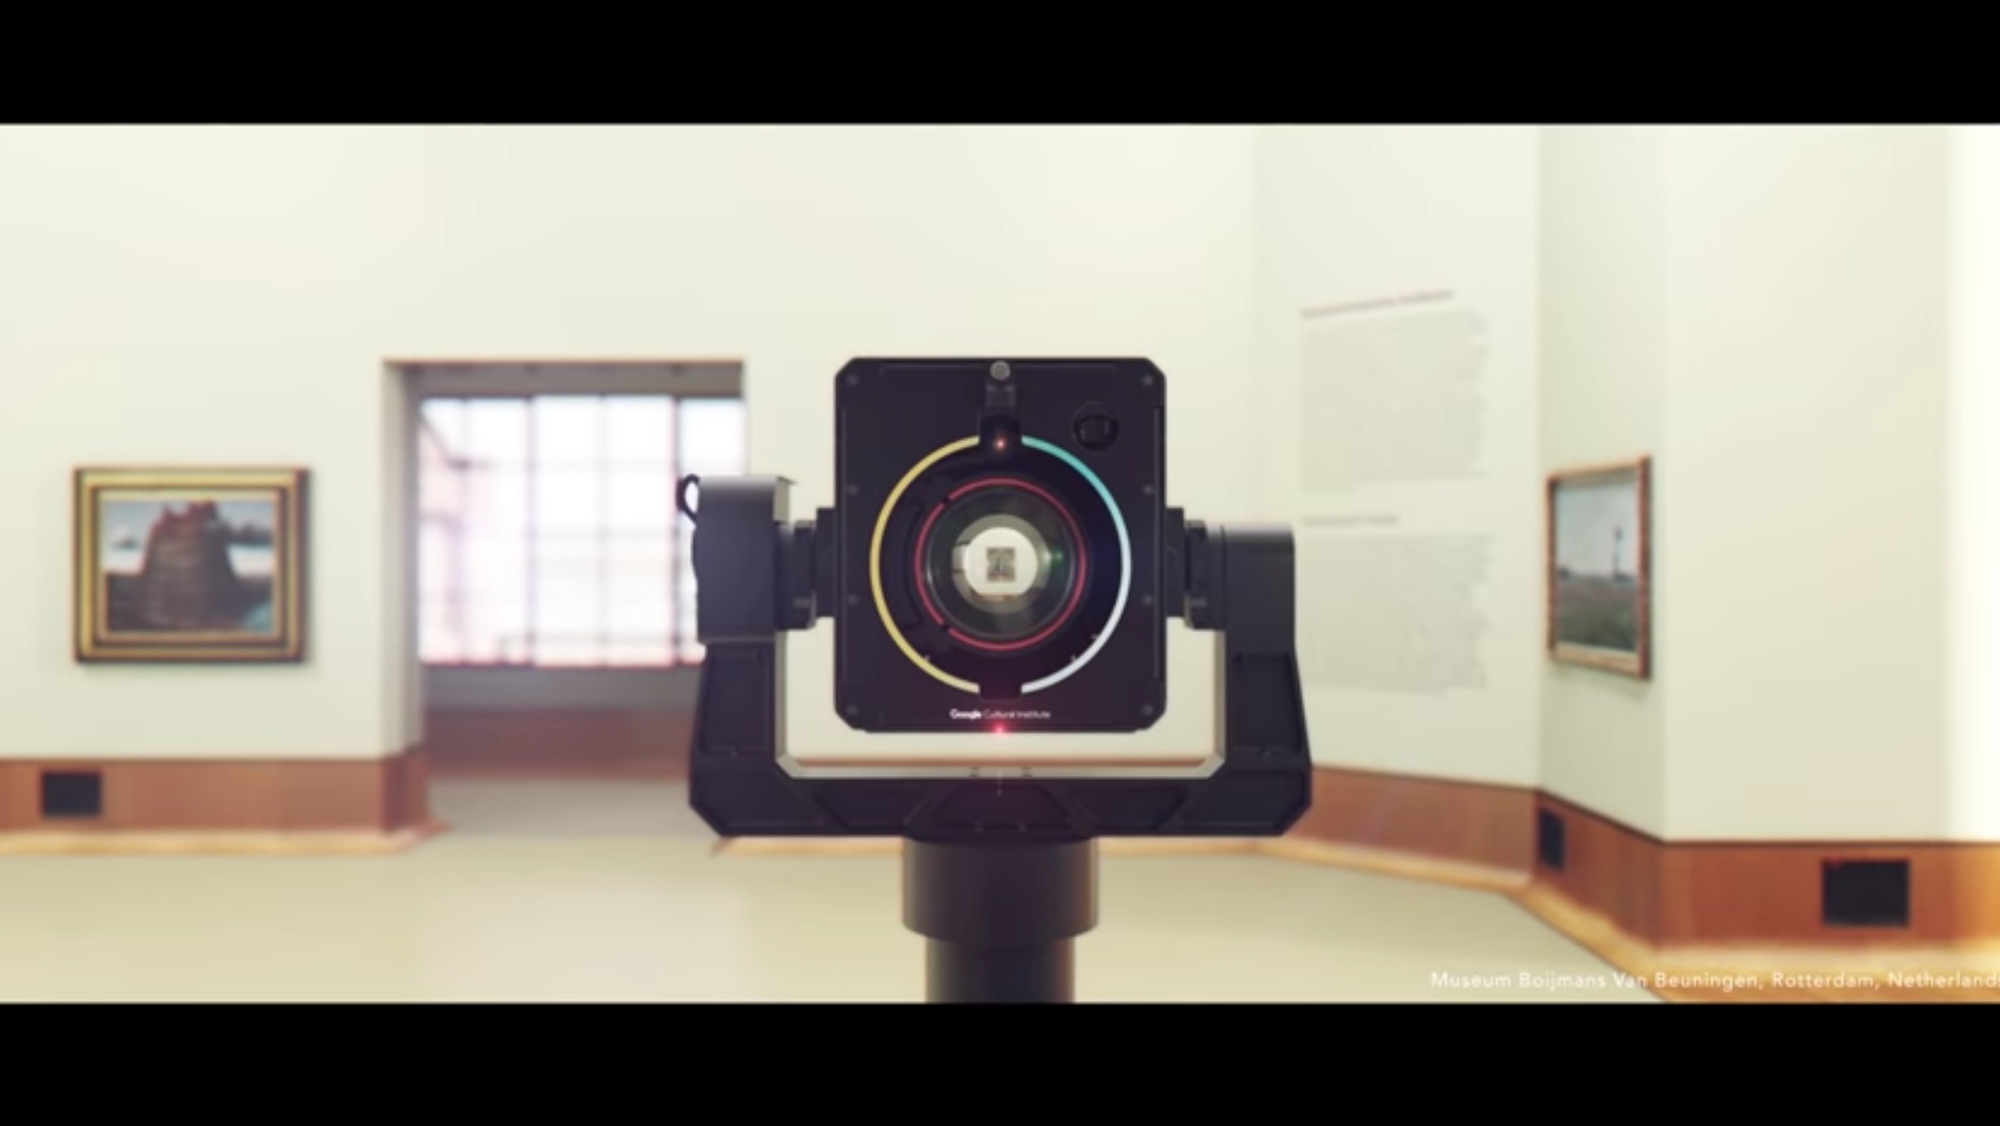 Meet the Art Camera by the Google Cultural Institute at Museum Boijmans Van Beuningen